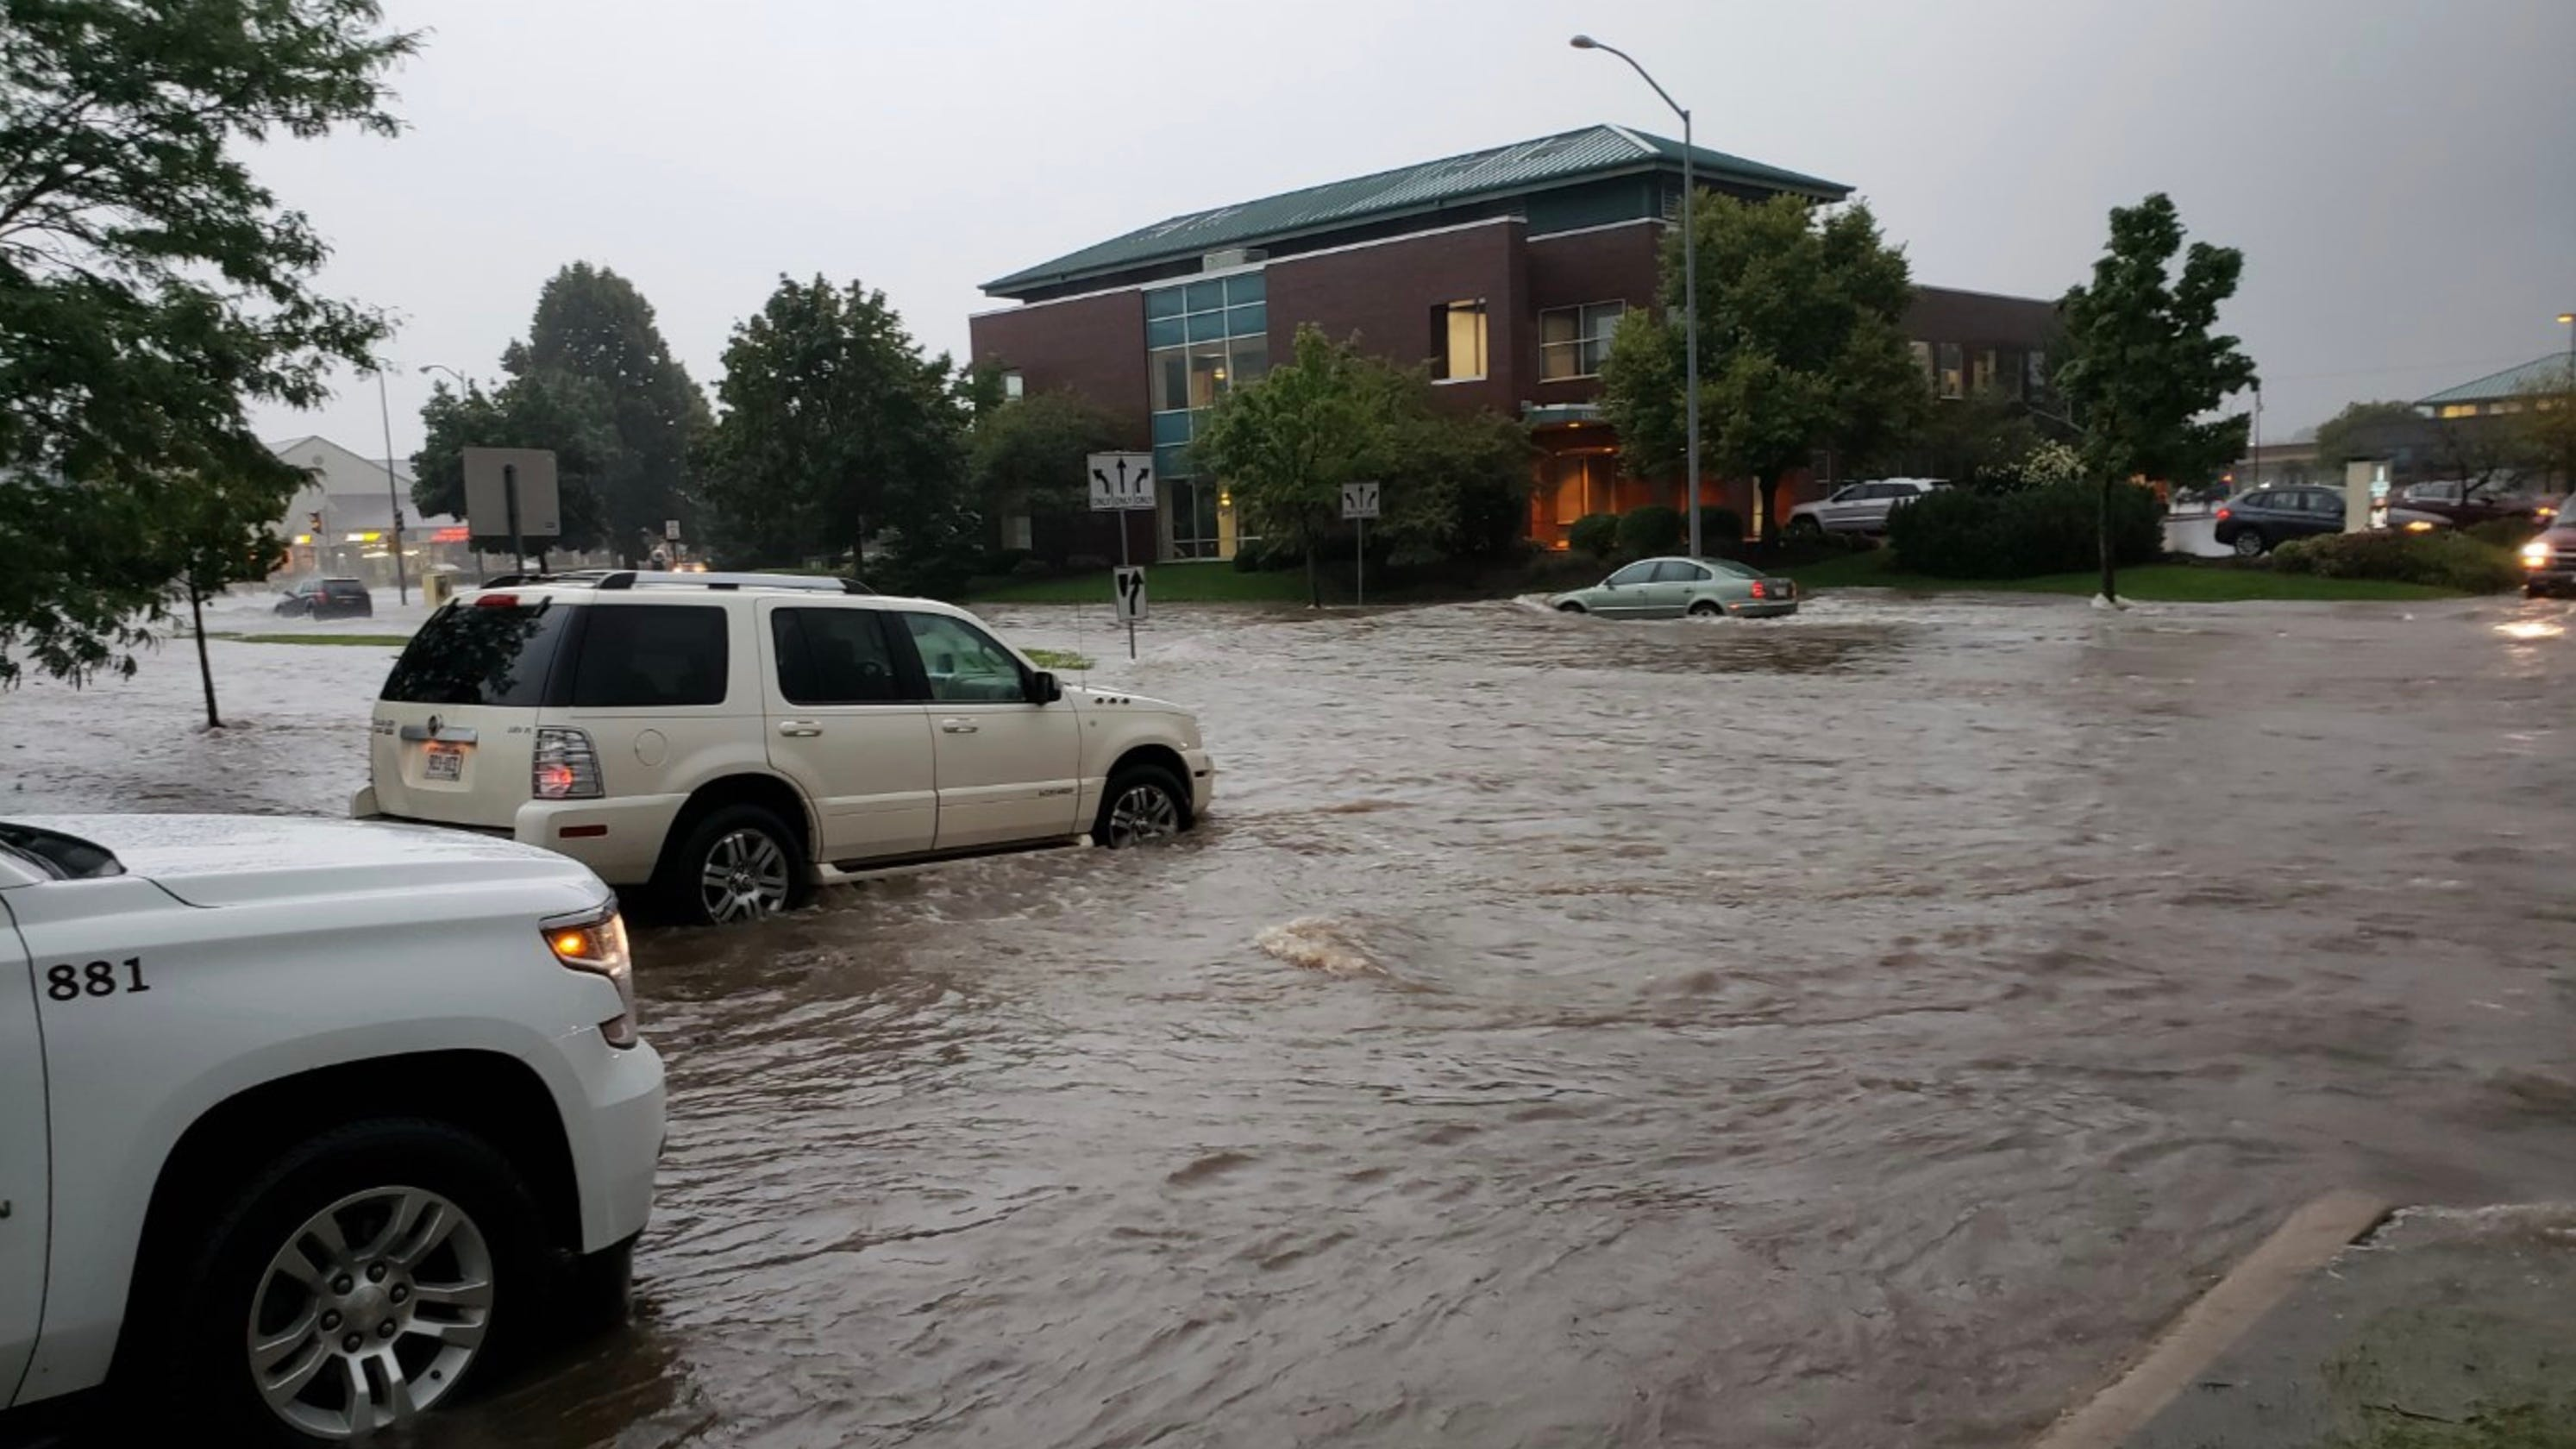 Madison Braces For Flooding, News And Photos Shared On